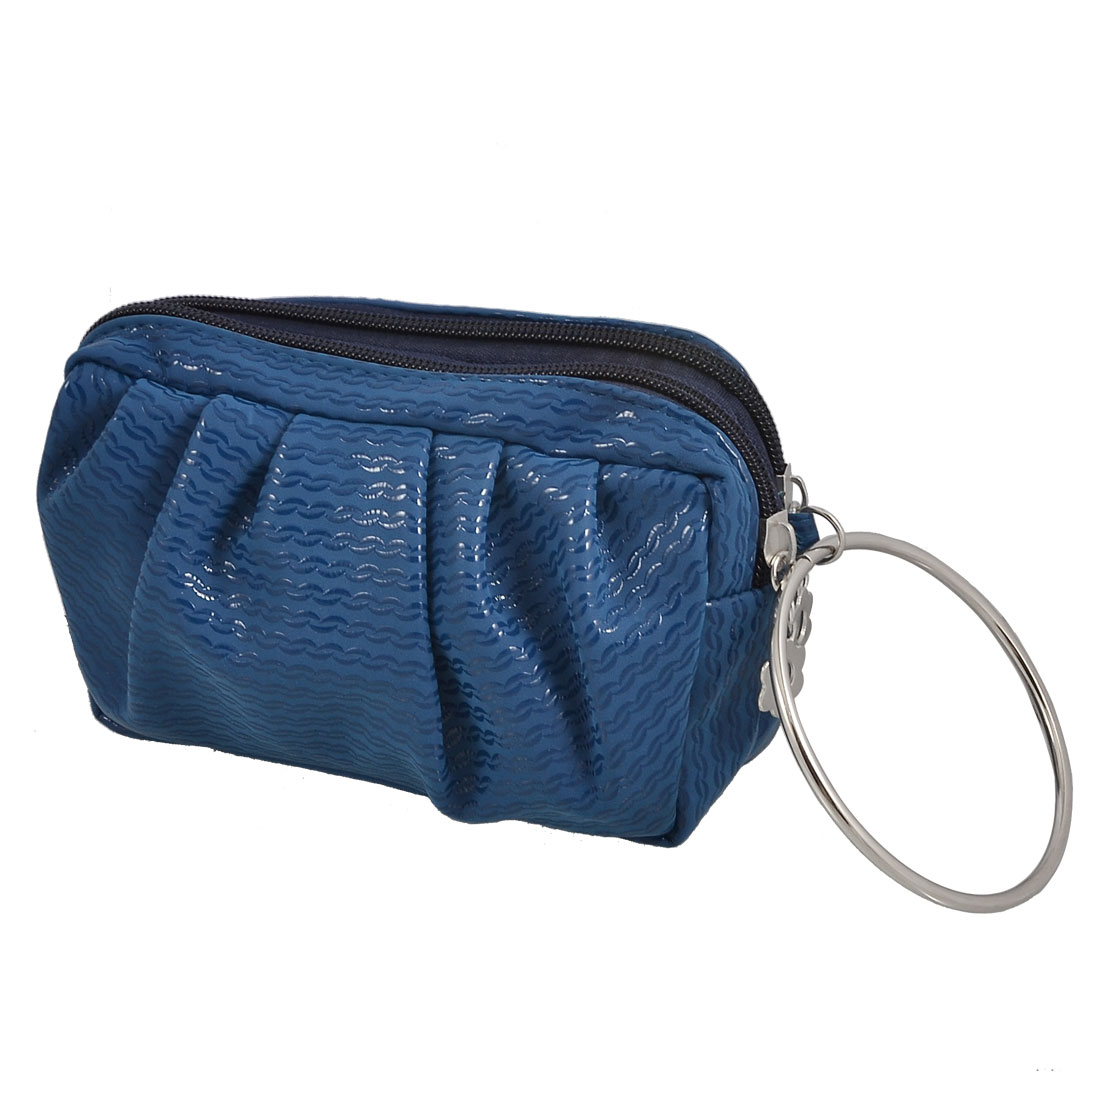 Blue Wave Pattern Double Zip Compartments Metal Ring Purse Pouch Carry Bag